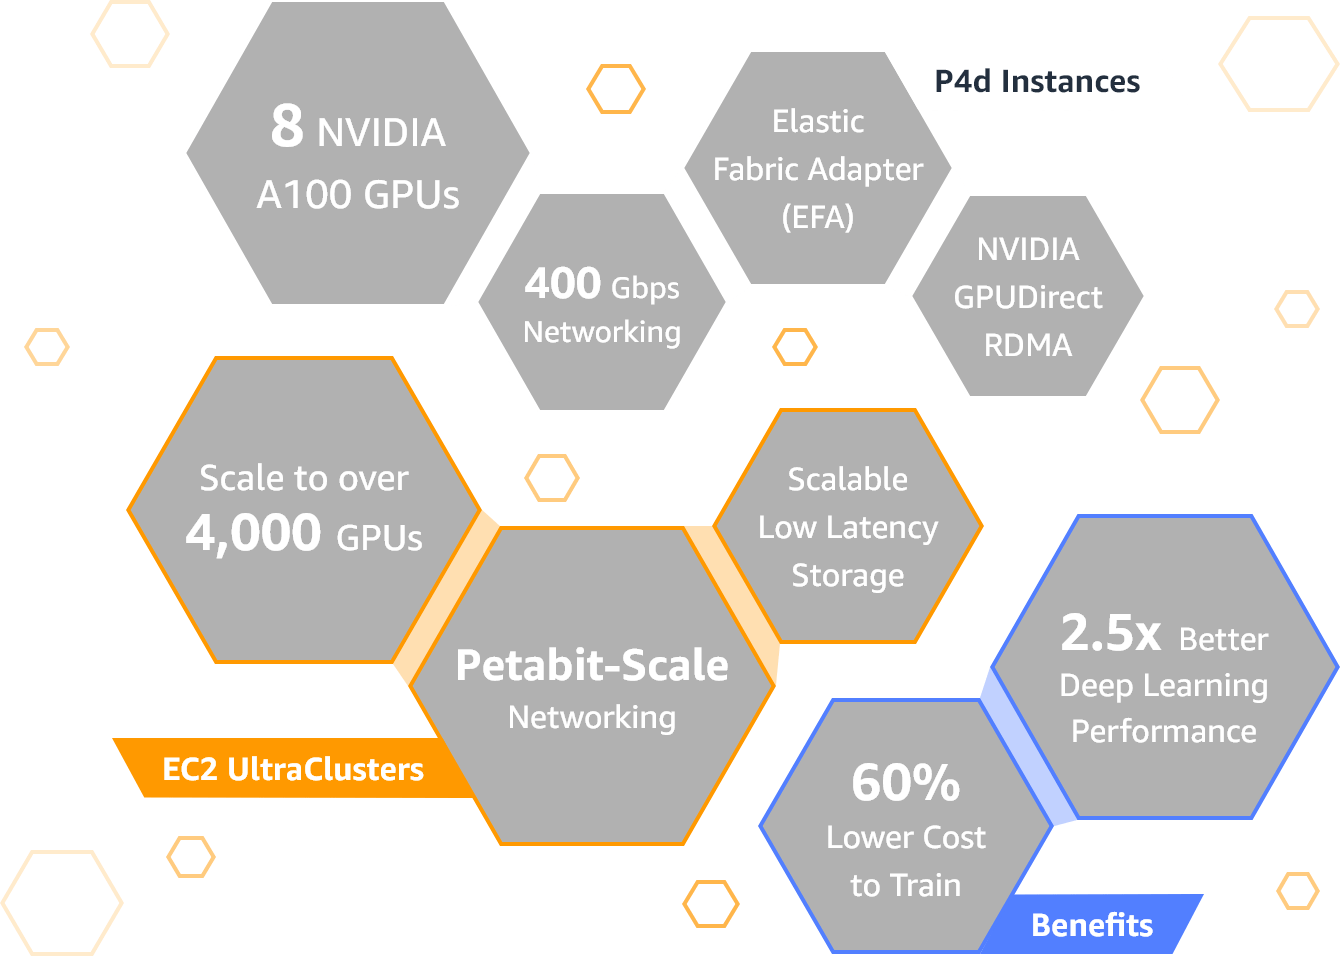 AWS Launches its Next-gen GPU Instances Powered by NVIDIA's Latest A100 GPUs - mytechmint